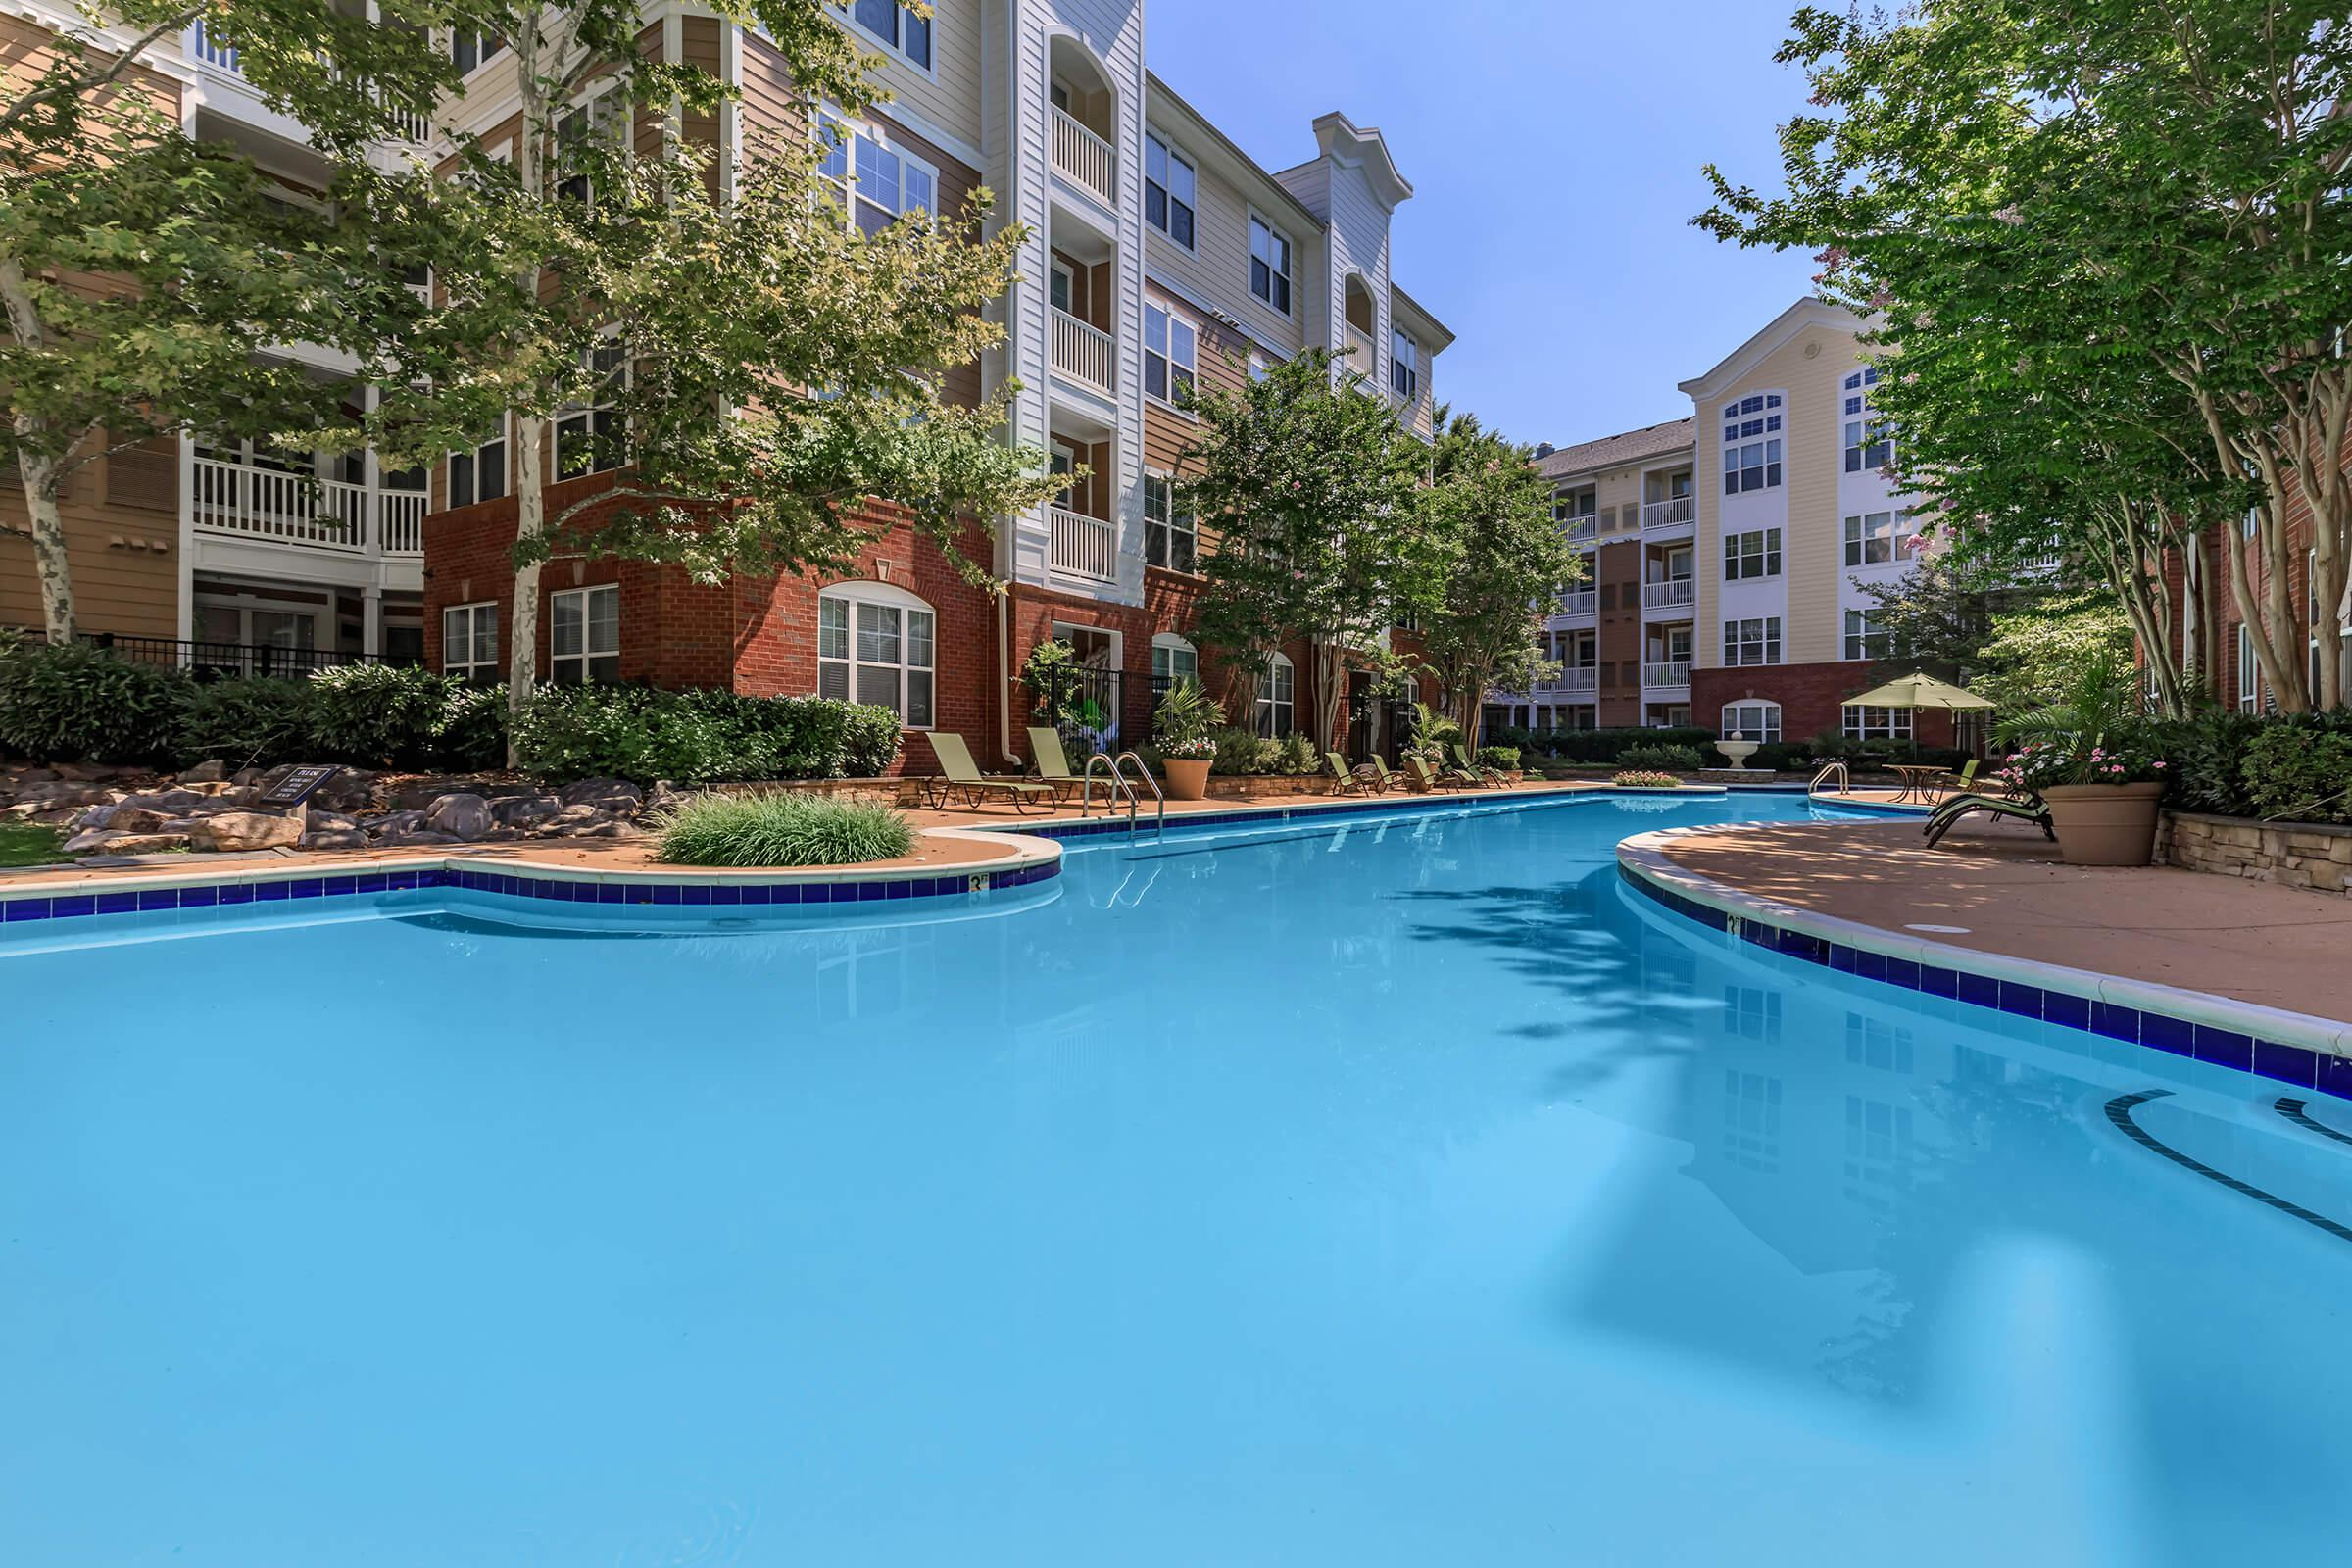 Pool at Emerson at Cherry Lane Apartments in Laurel, MD